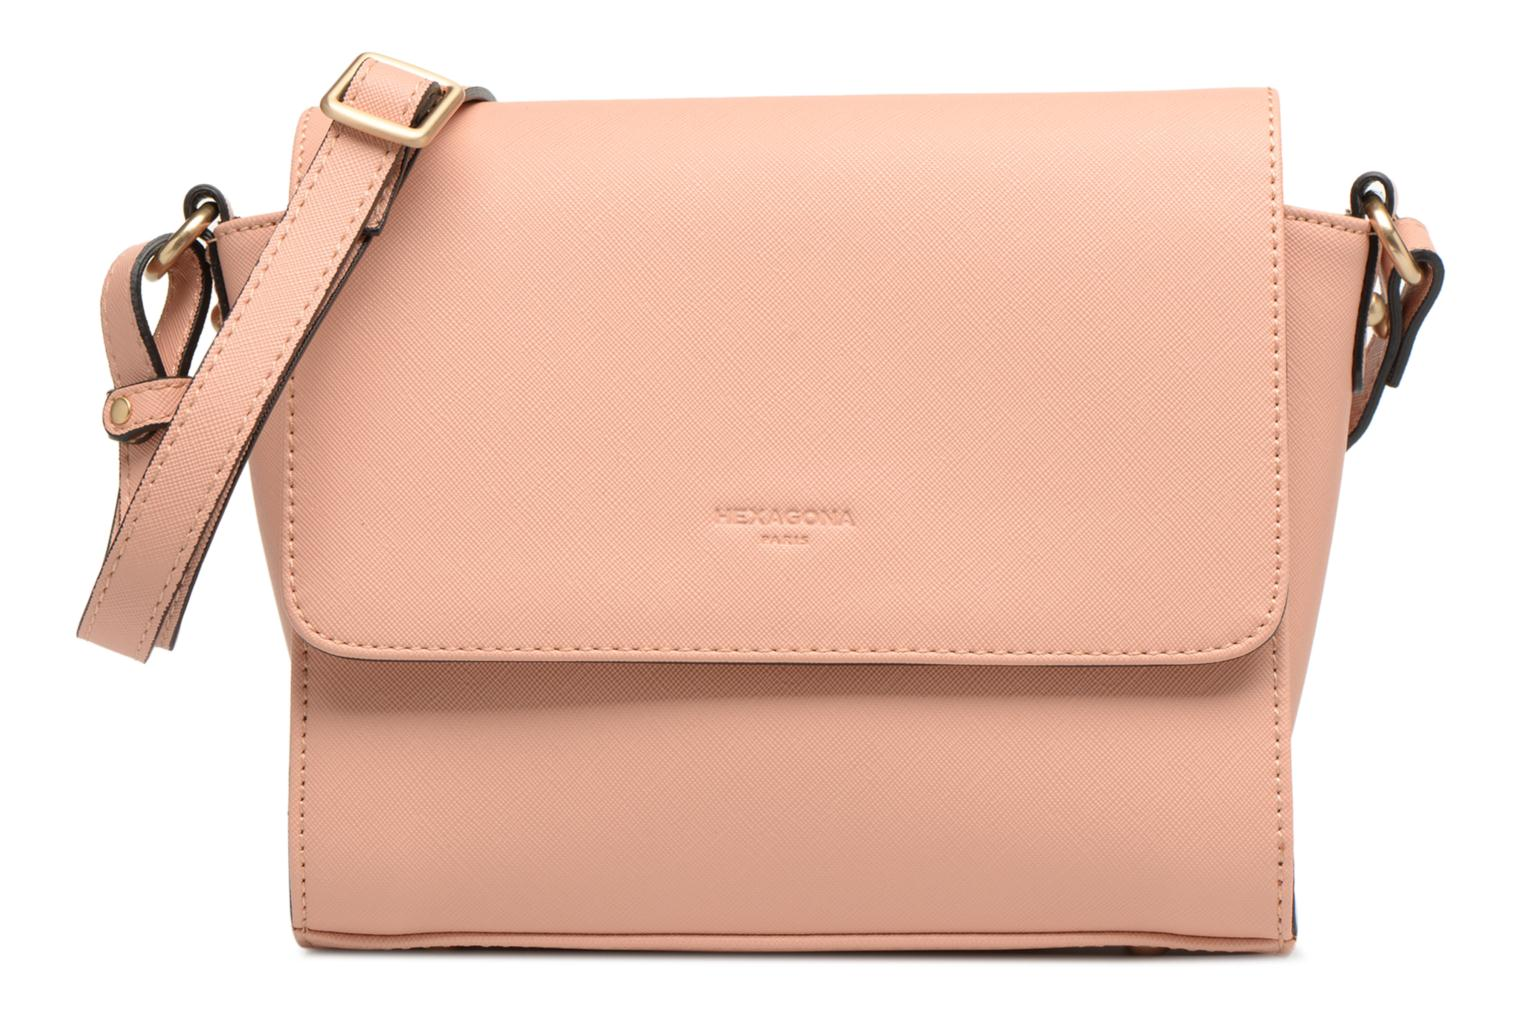 Crossbody A4 ROSE PALE Florence Hexagona aOnxSS